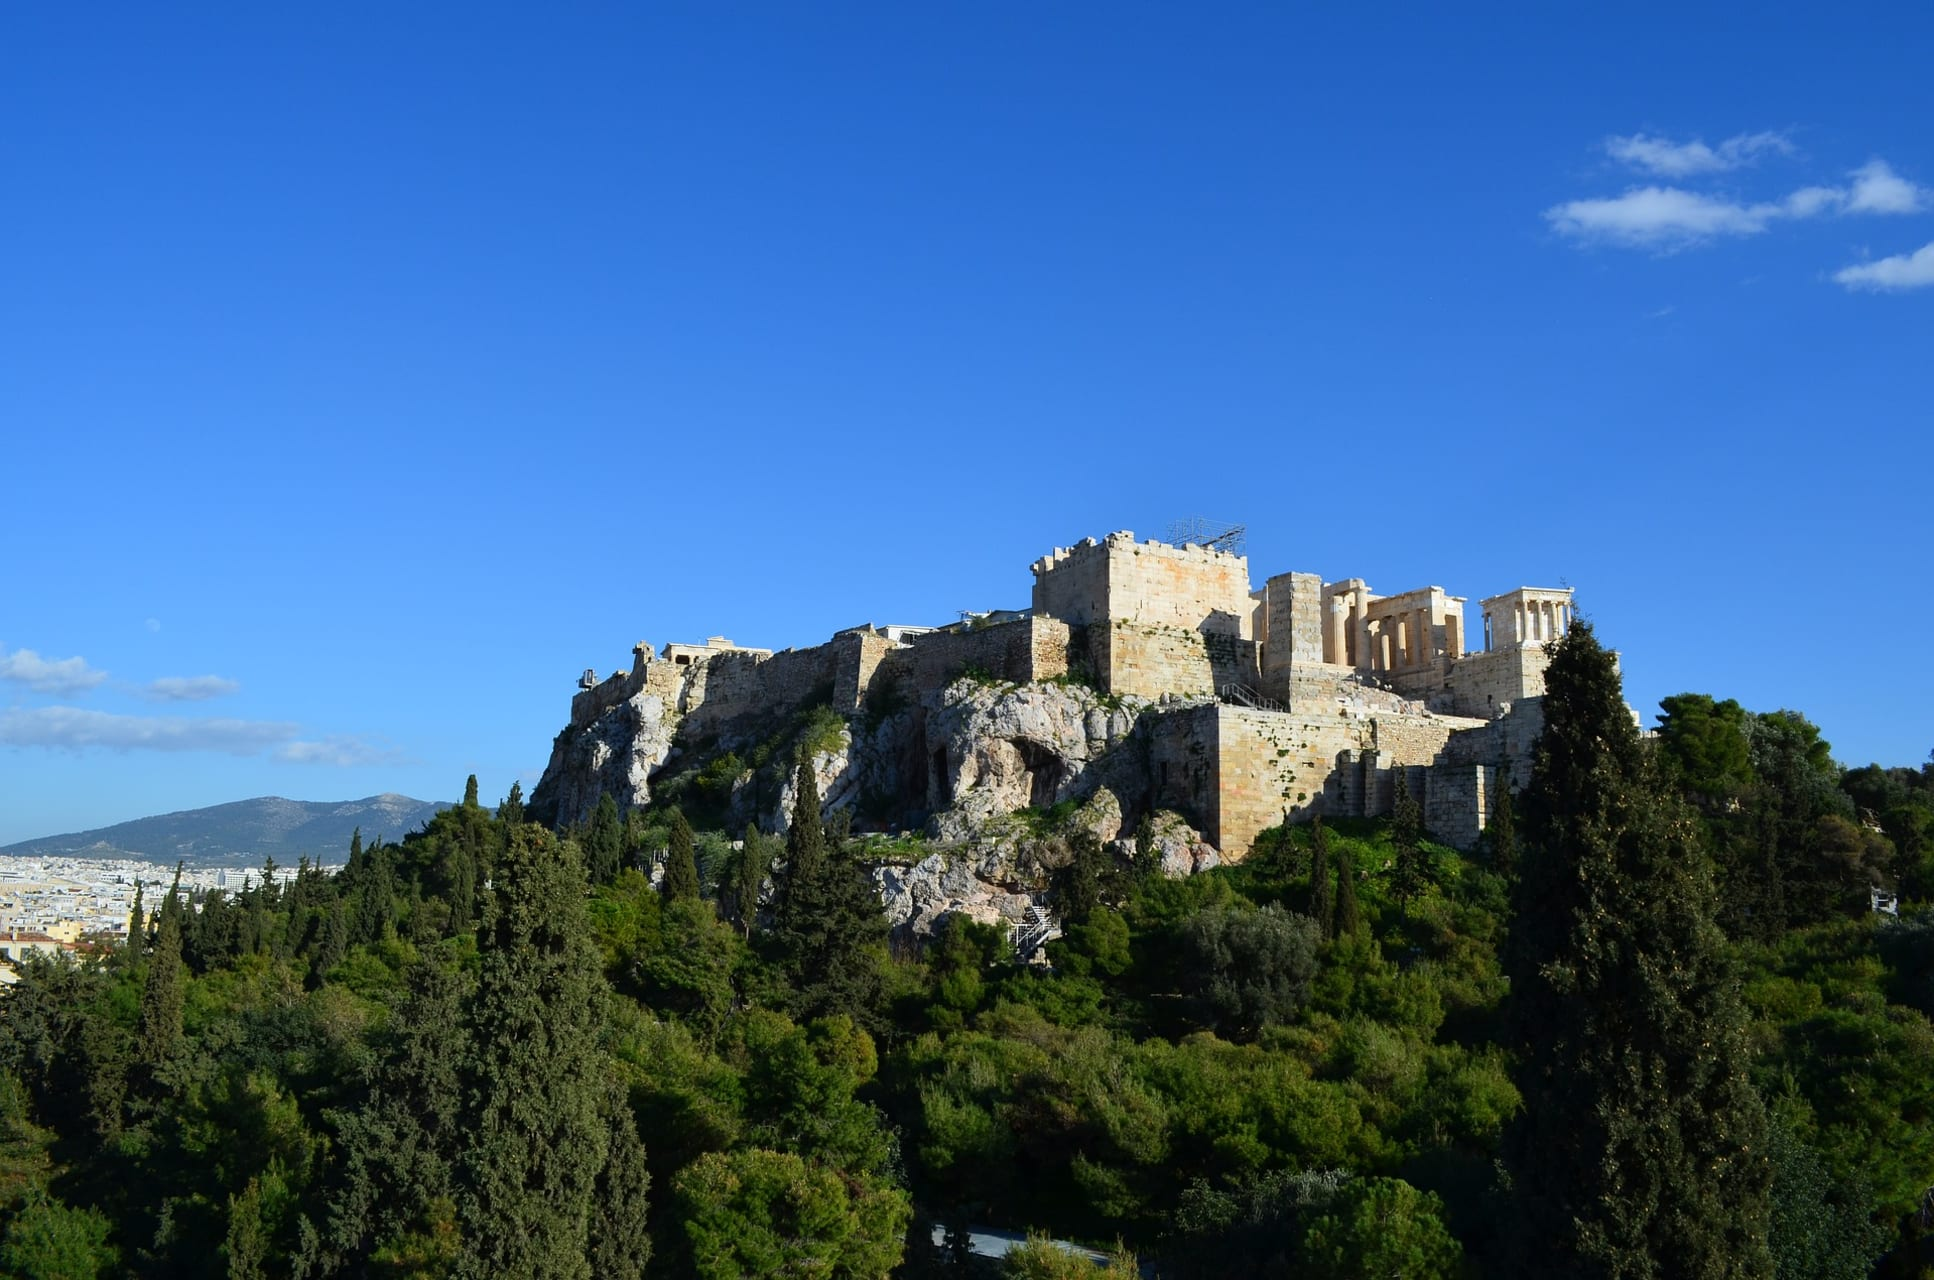 Athens - Athens, on the Foothill of the Acropolis